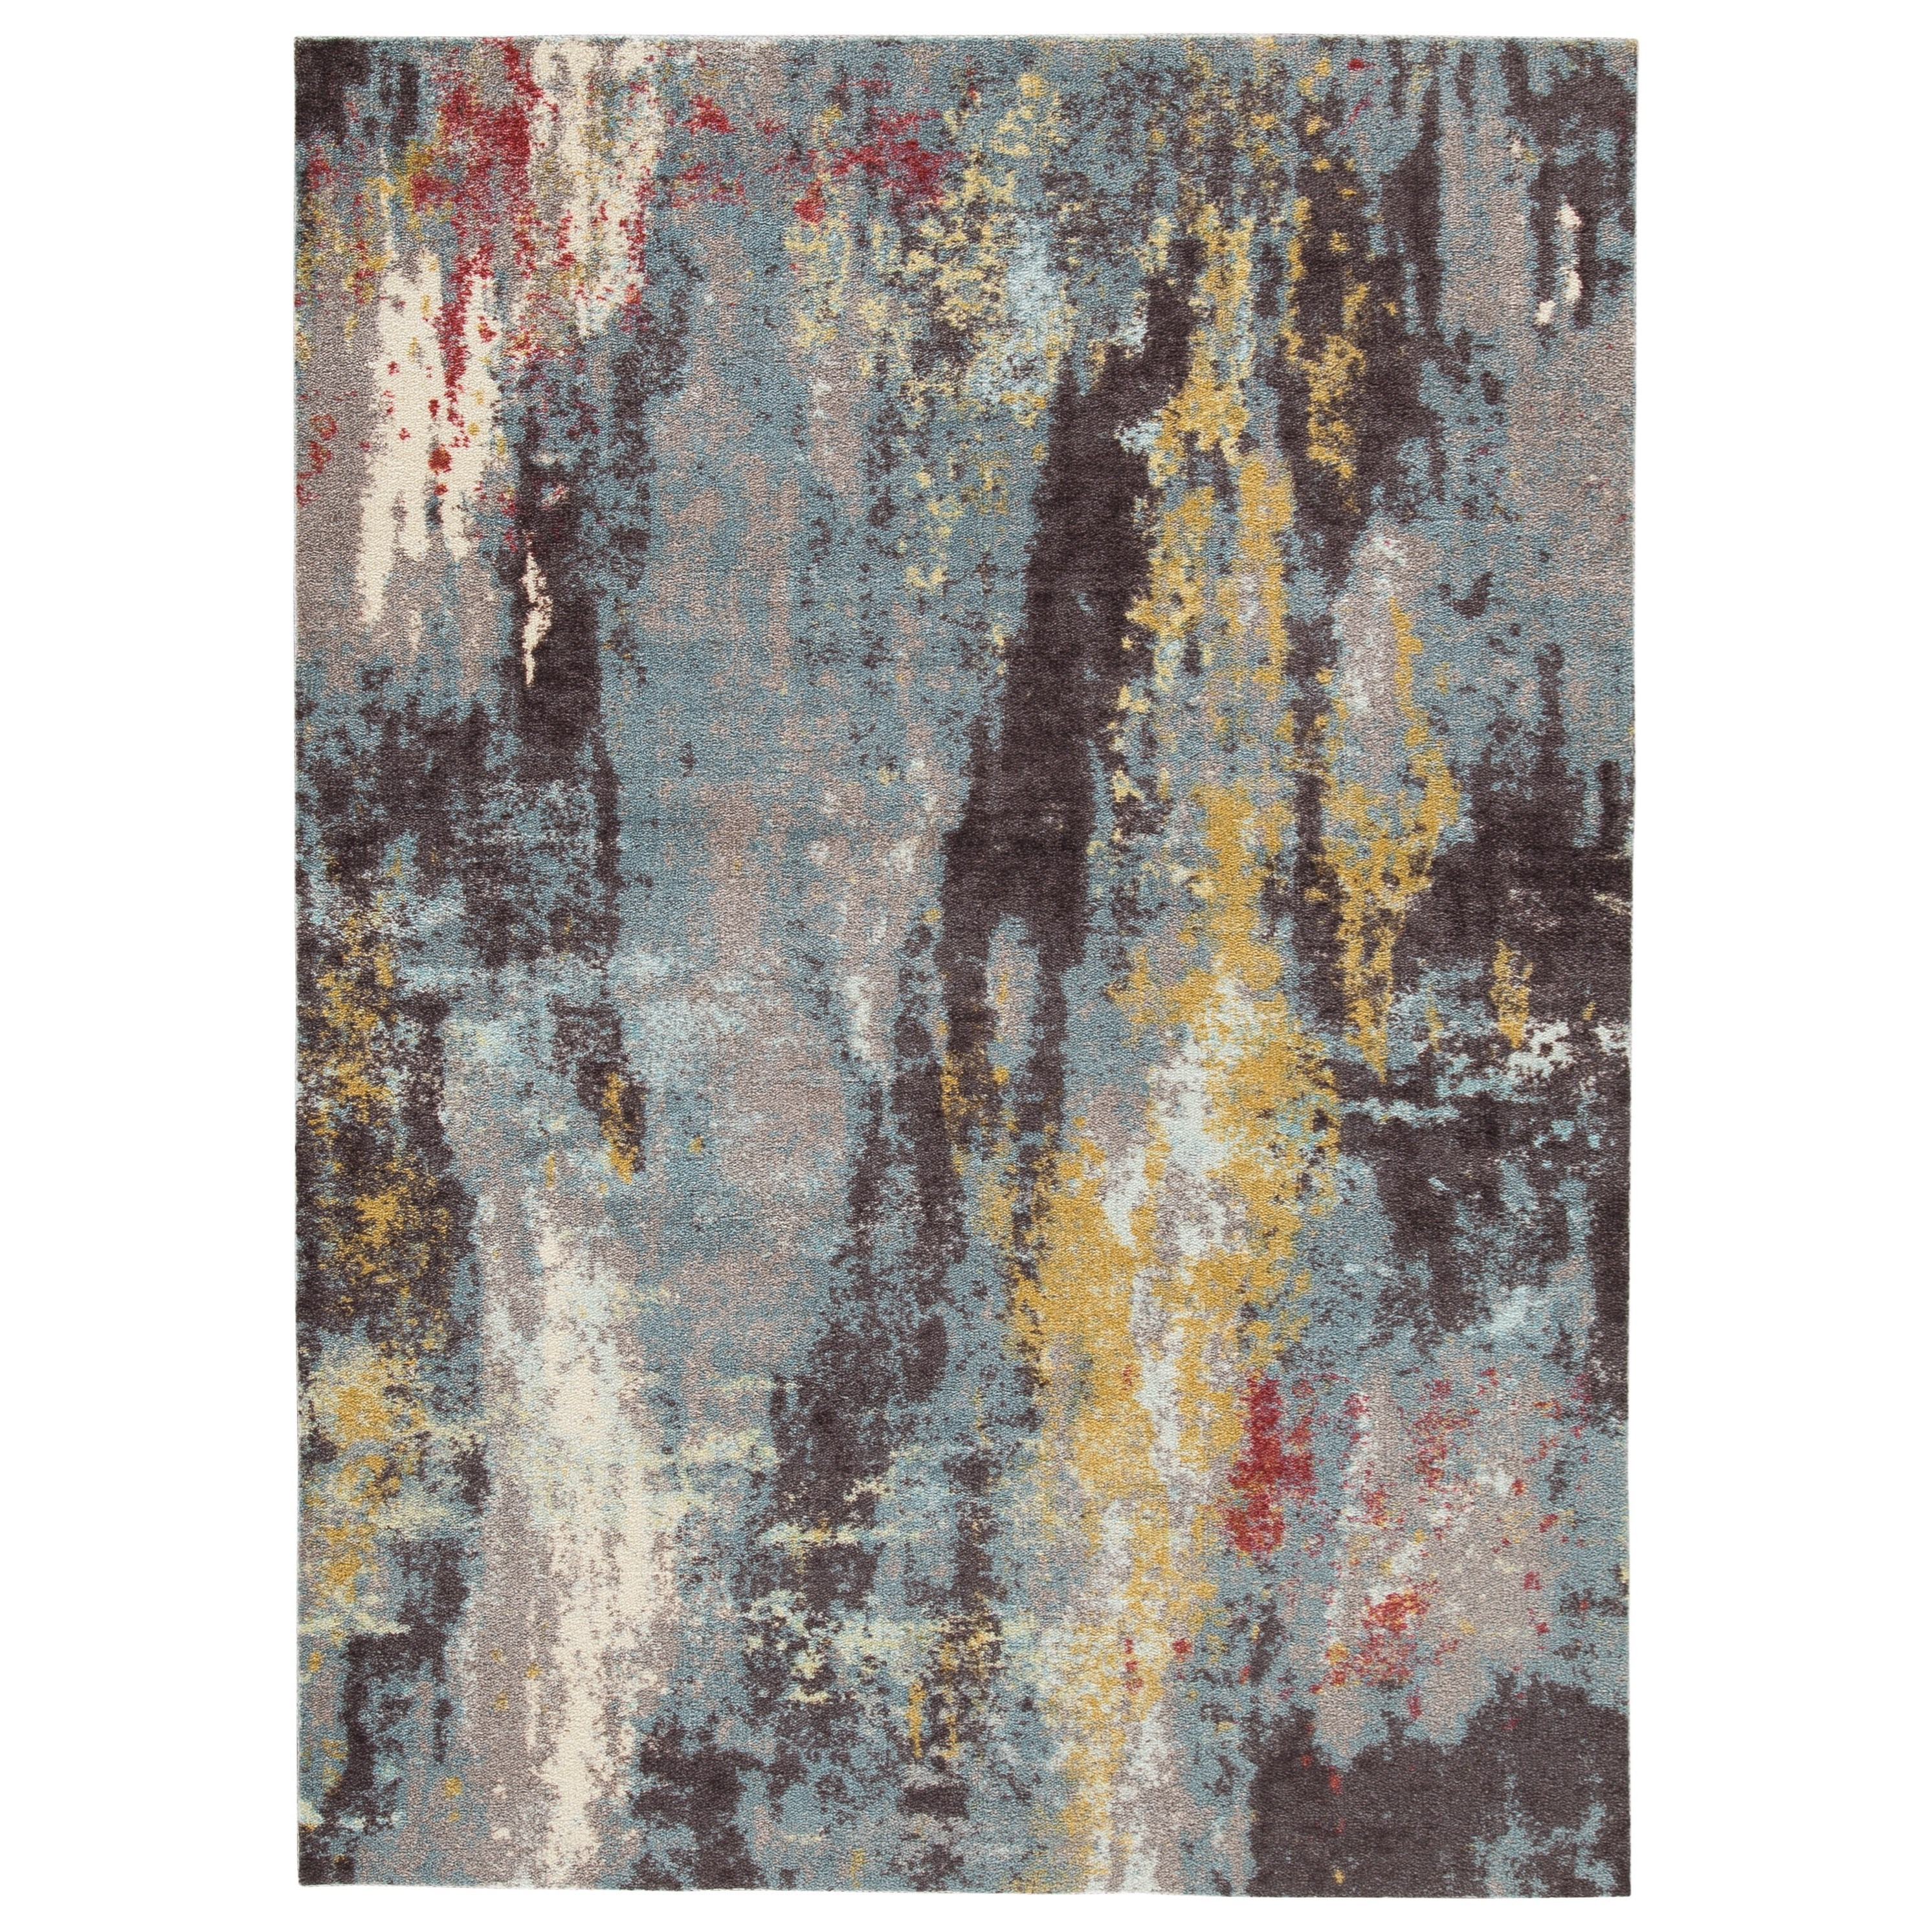 Contemporary Area Rugs Quent Blue/Gray/Yellow Medium Rug by Signature Design by Ashley at Coconis Furniture & Mattress 1st